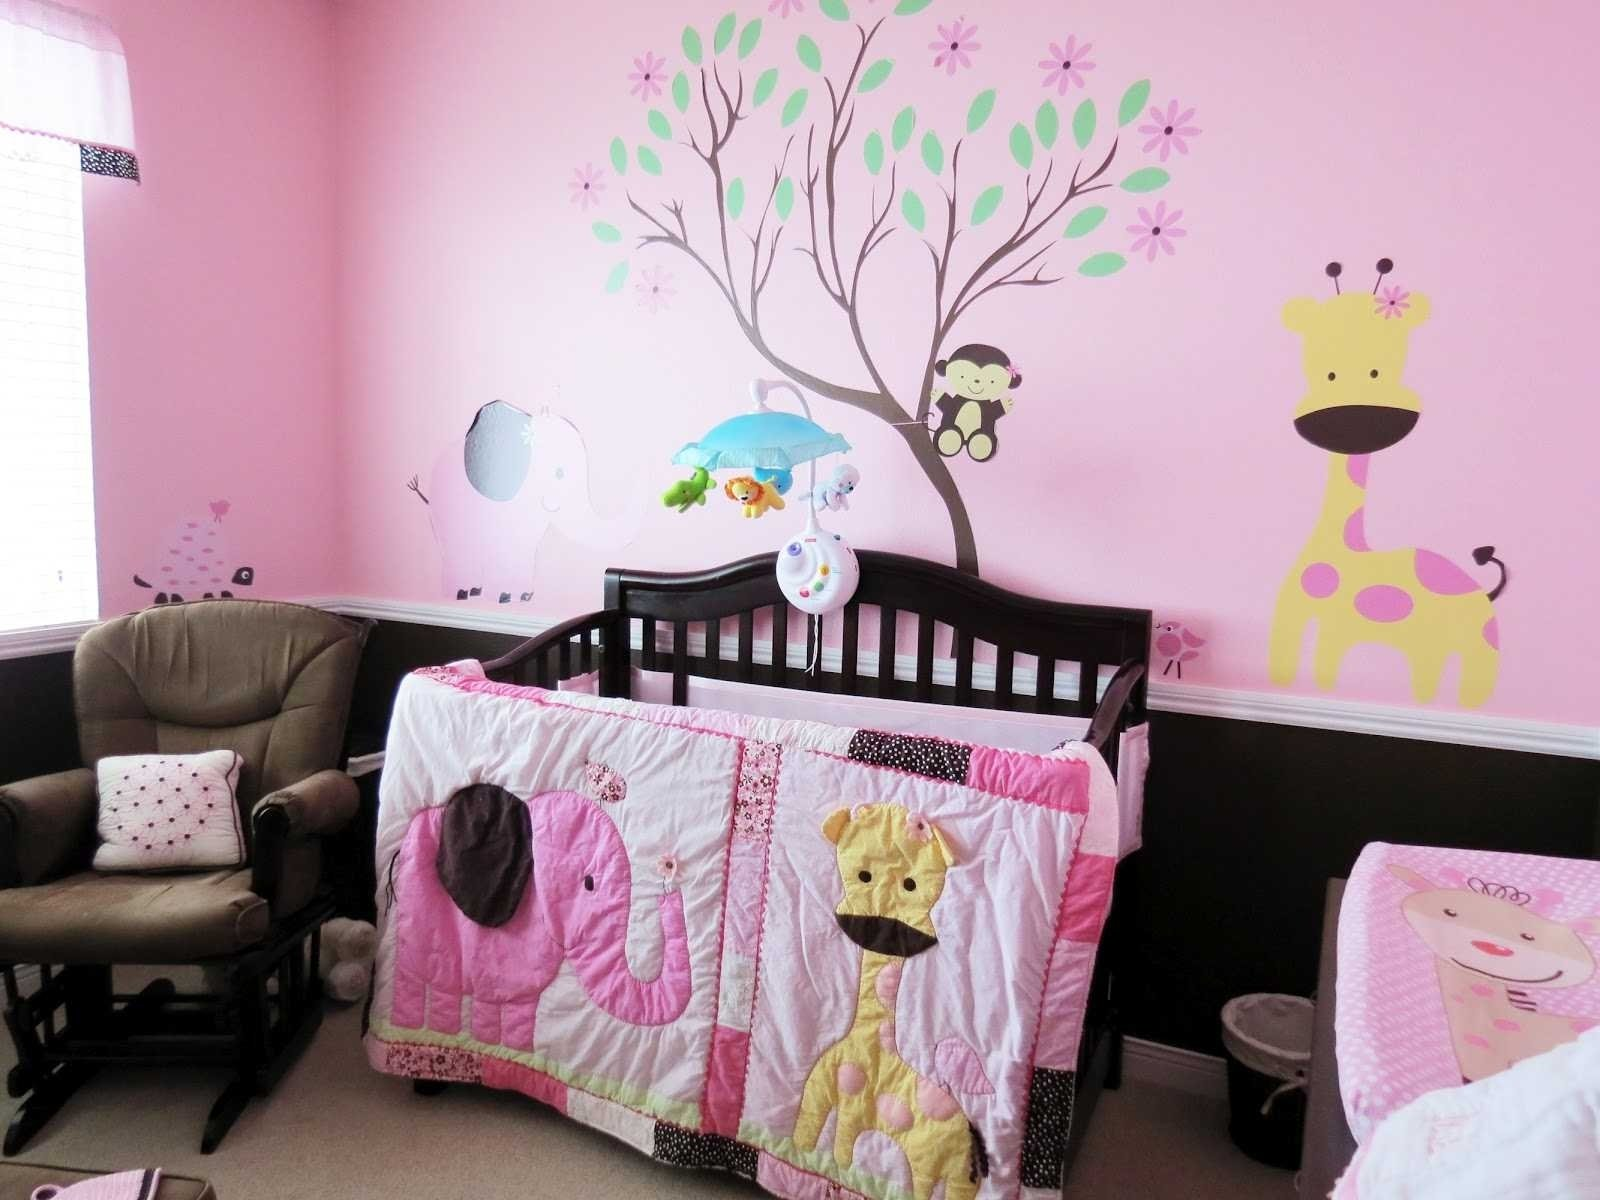 10 Fabulous Baby Girl Themed Nursery Ideas bedroom nursery ideas for pink trends also incredible baby girl